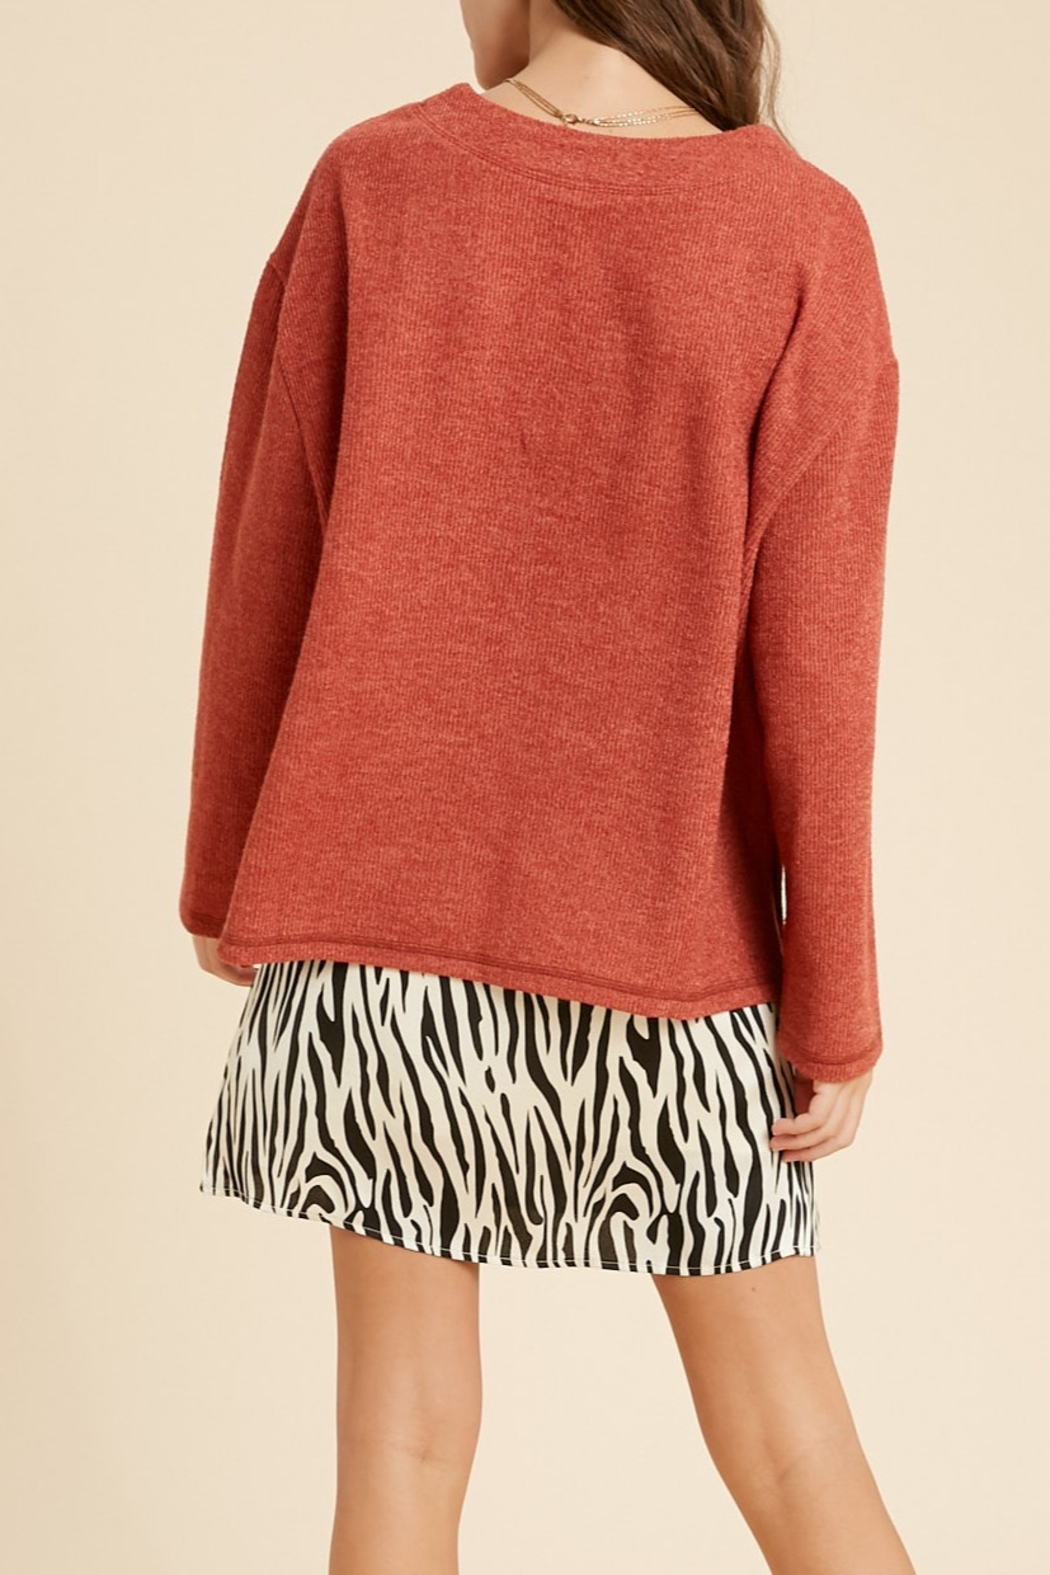 Wishlist Textured 2tone Knit Top - Front Full Image